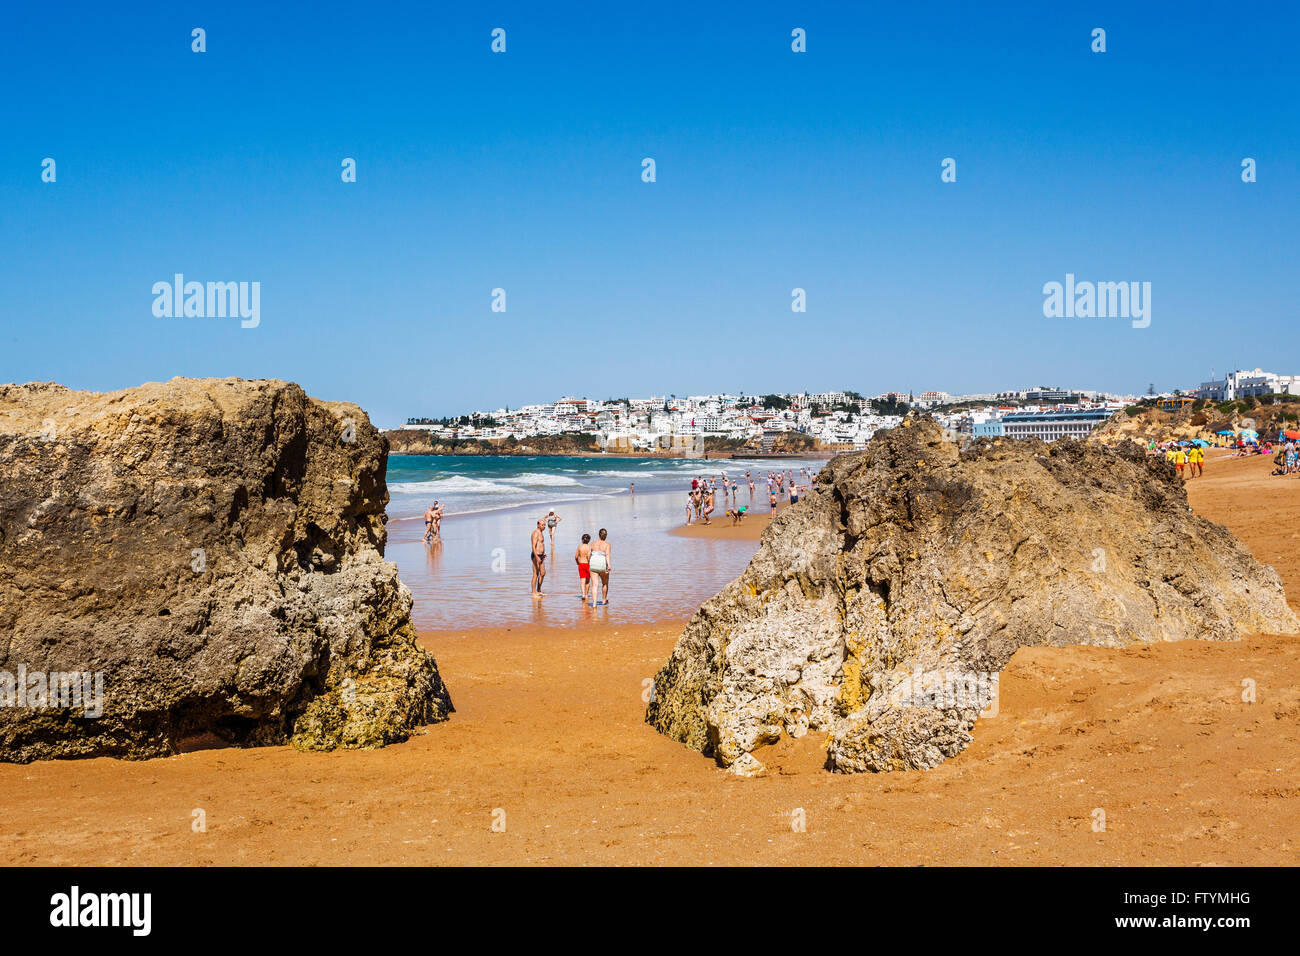 Portugal, Algarve, Faro district, Albufeira, view of Praia dos Alemaes - Stock Image